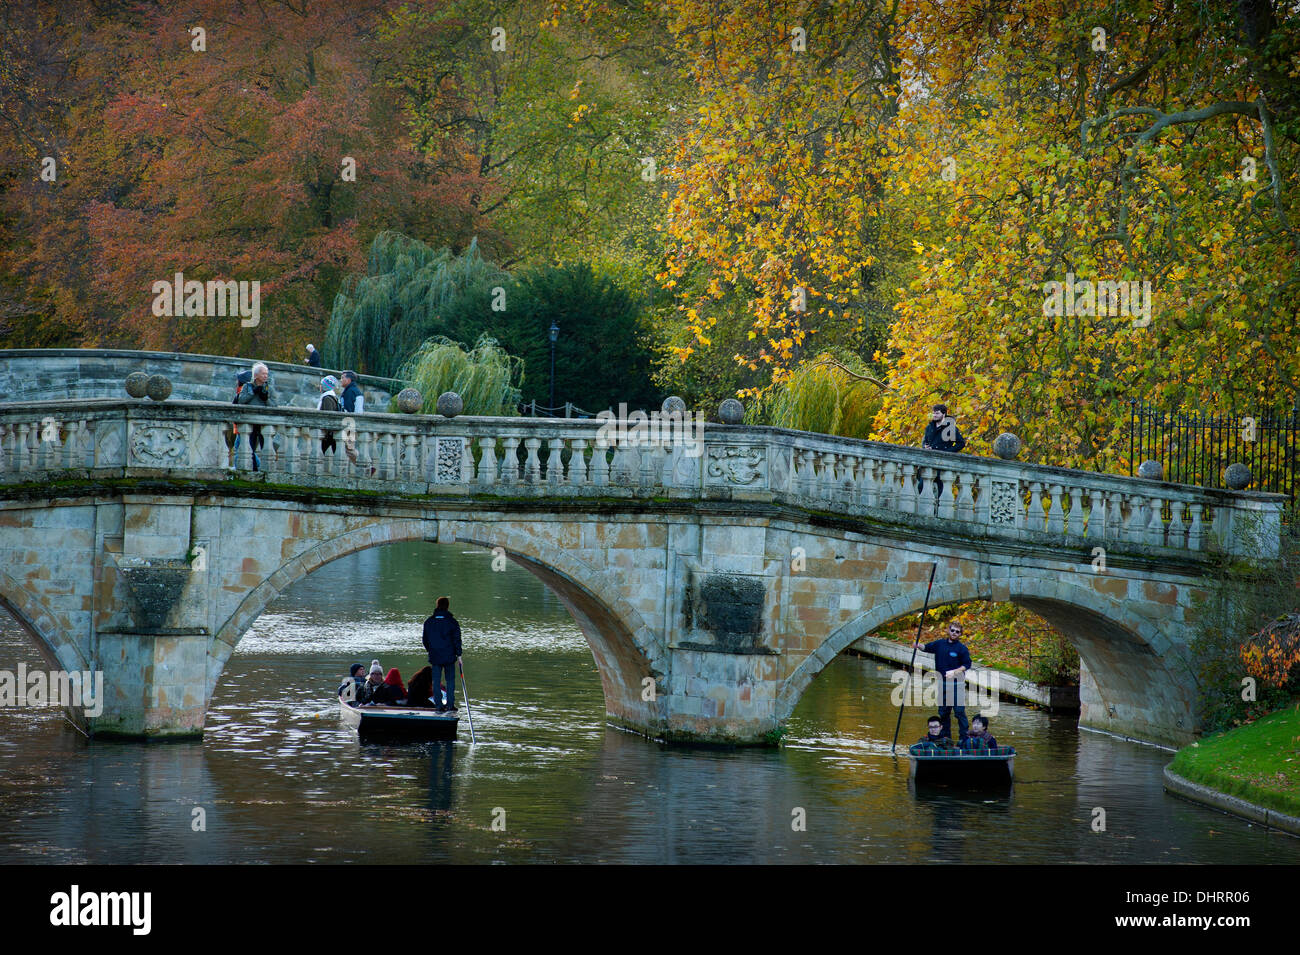 Autumn Colours on the River Cam, Cambridge, England. 14_11_2013 Visitors to Cambridge on punts enjoy the autumn - Stock Image